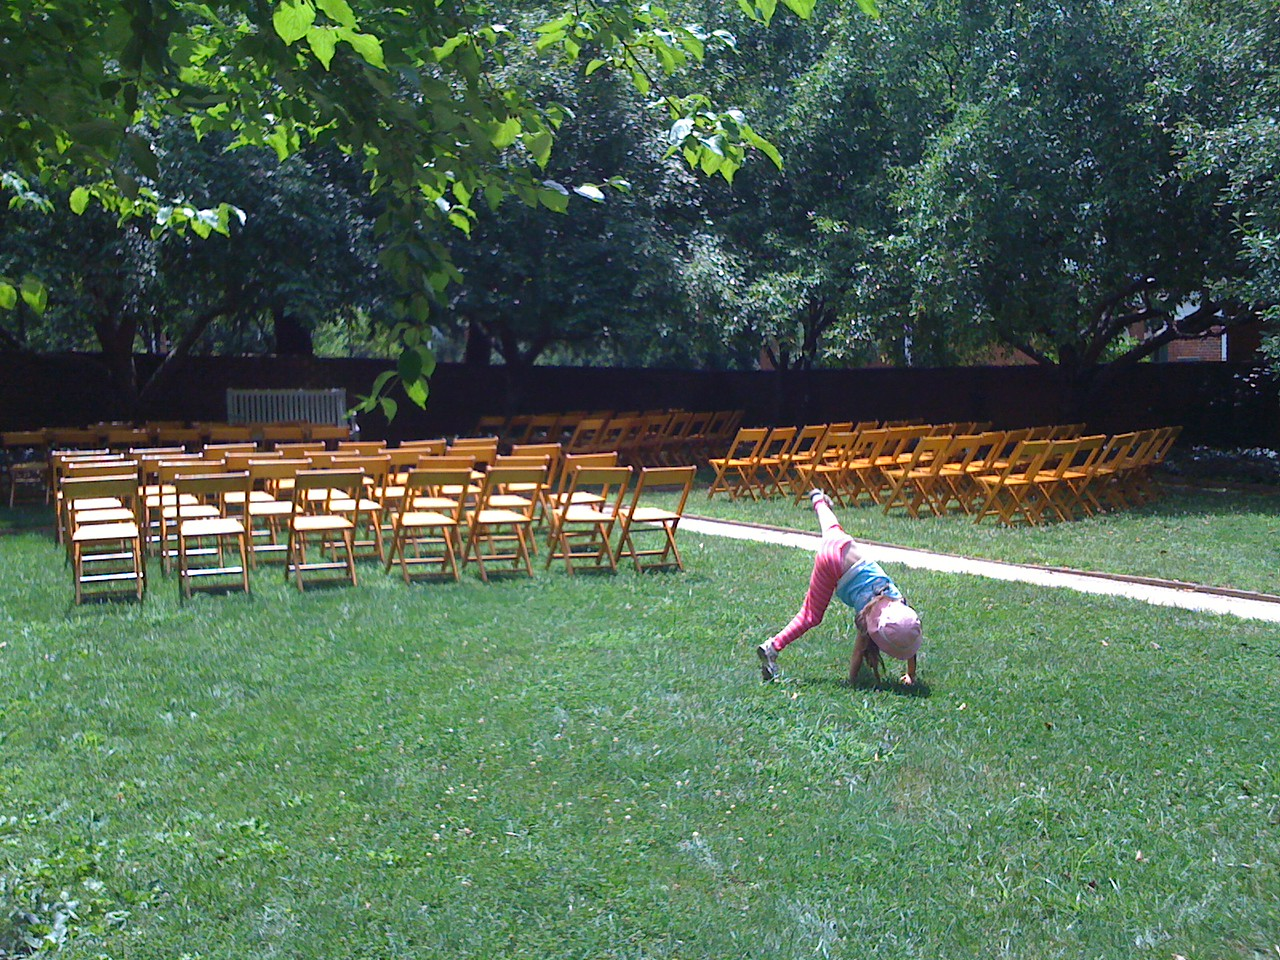 Cartwheel where Mom and Dad got married